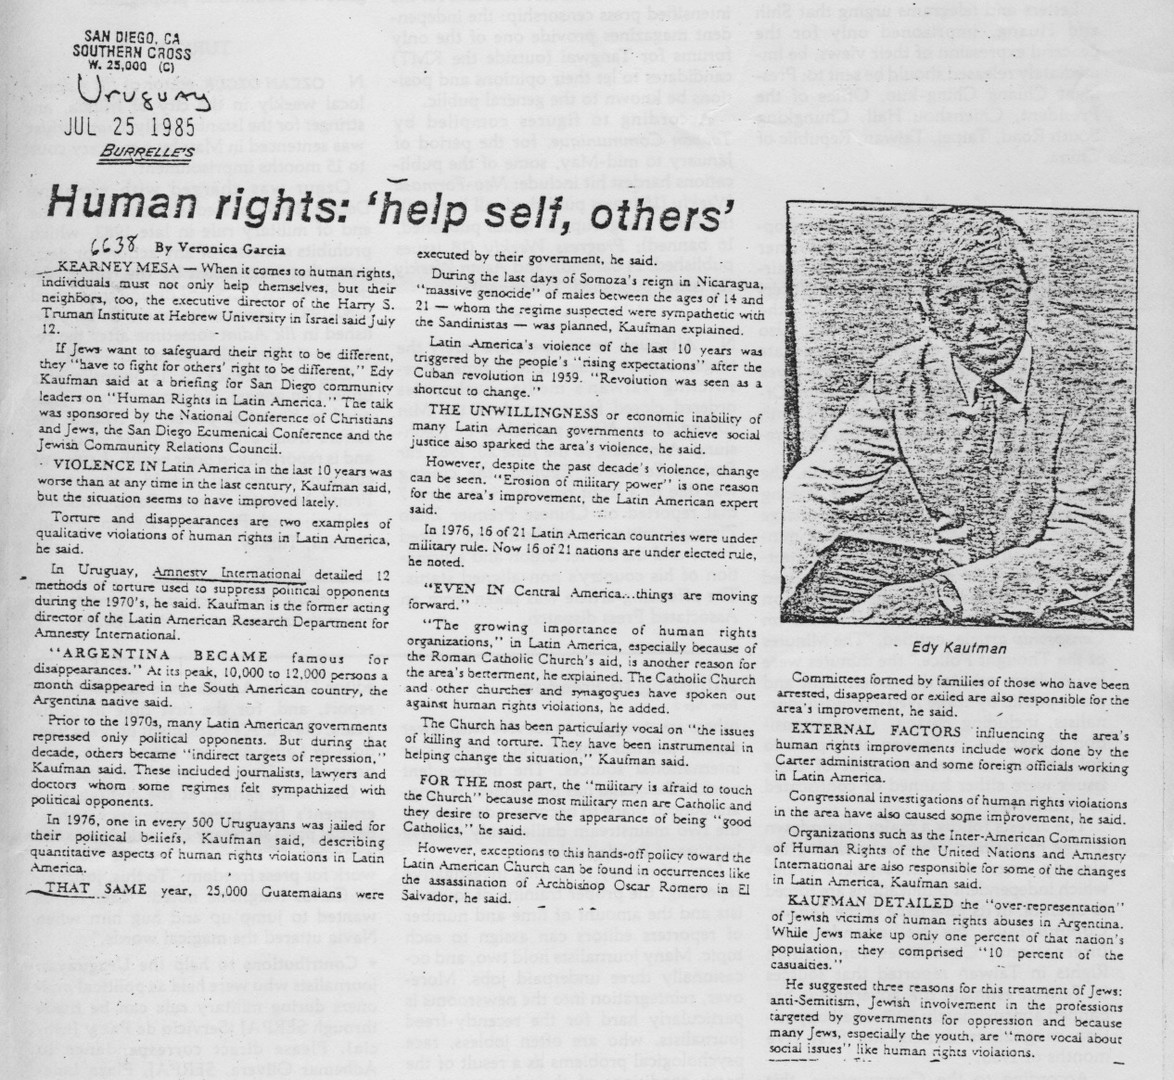 human rights help self, others.jpeg